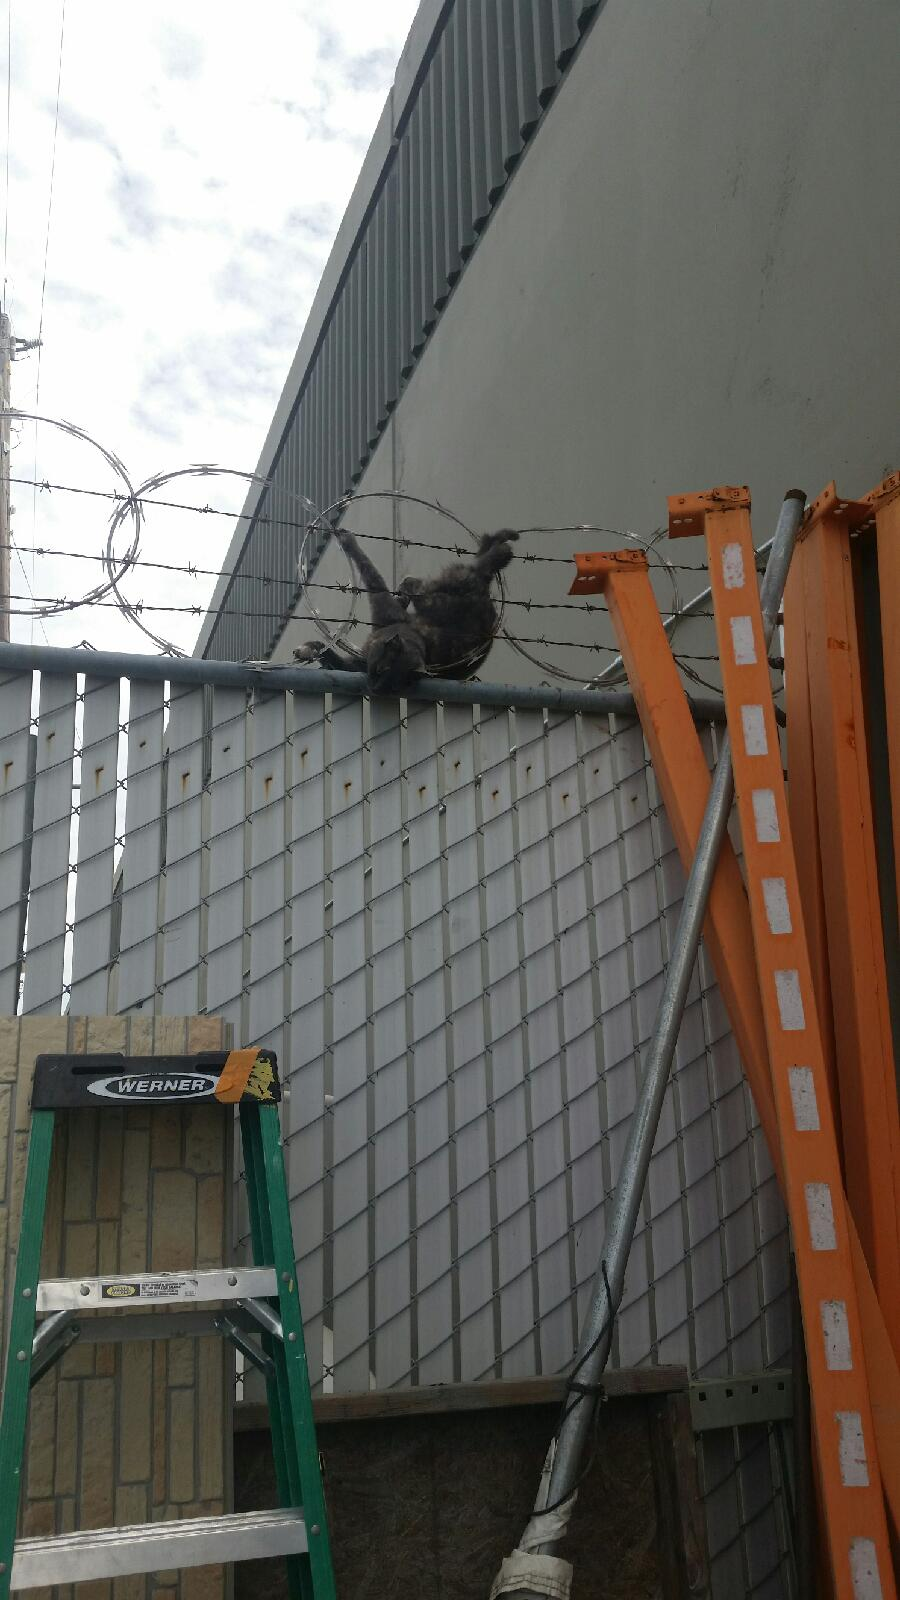 Feral Cat Stuck in Razor Wire — Tails of a Shelter Vet